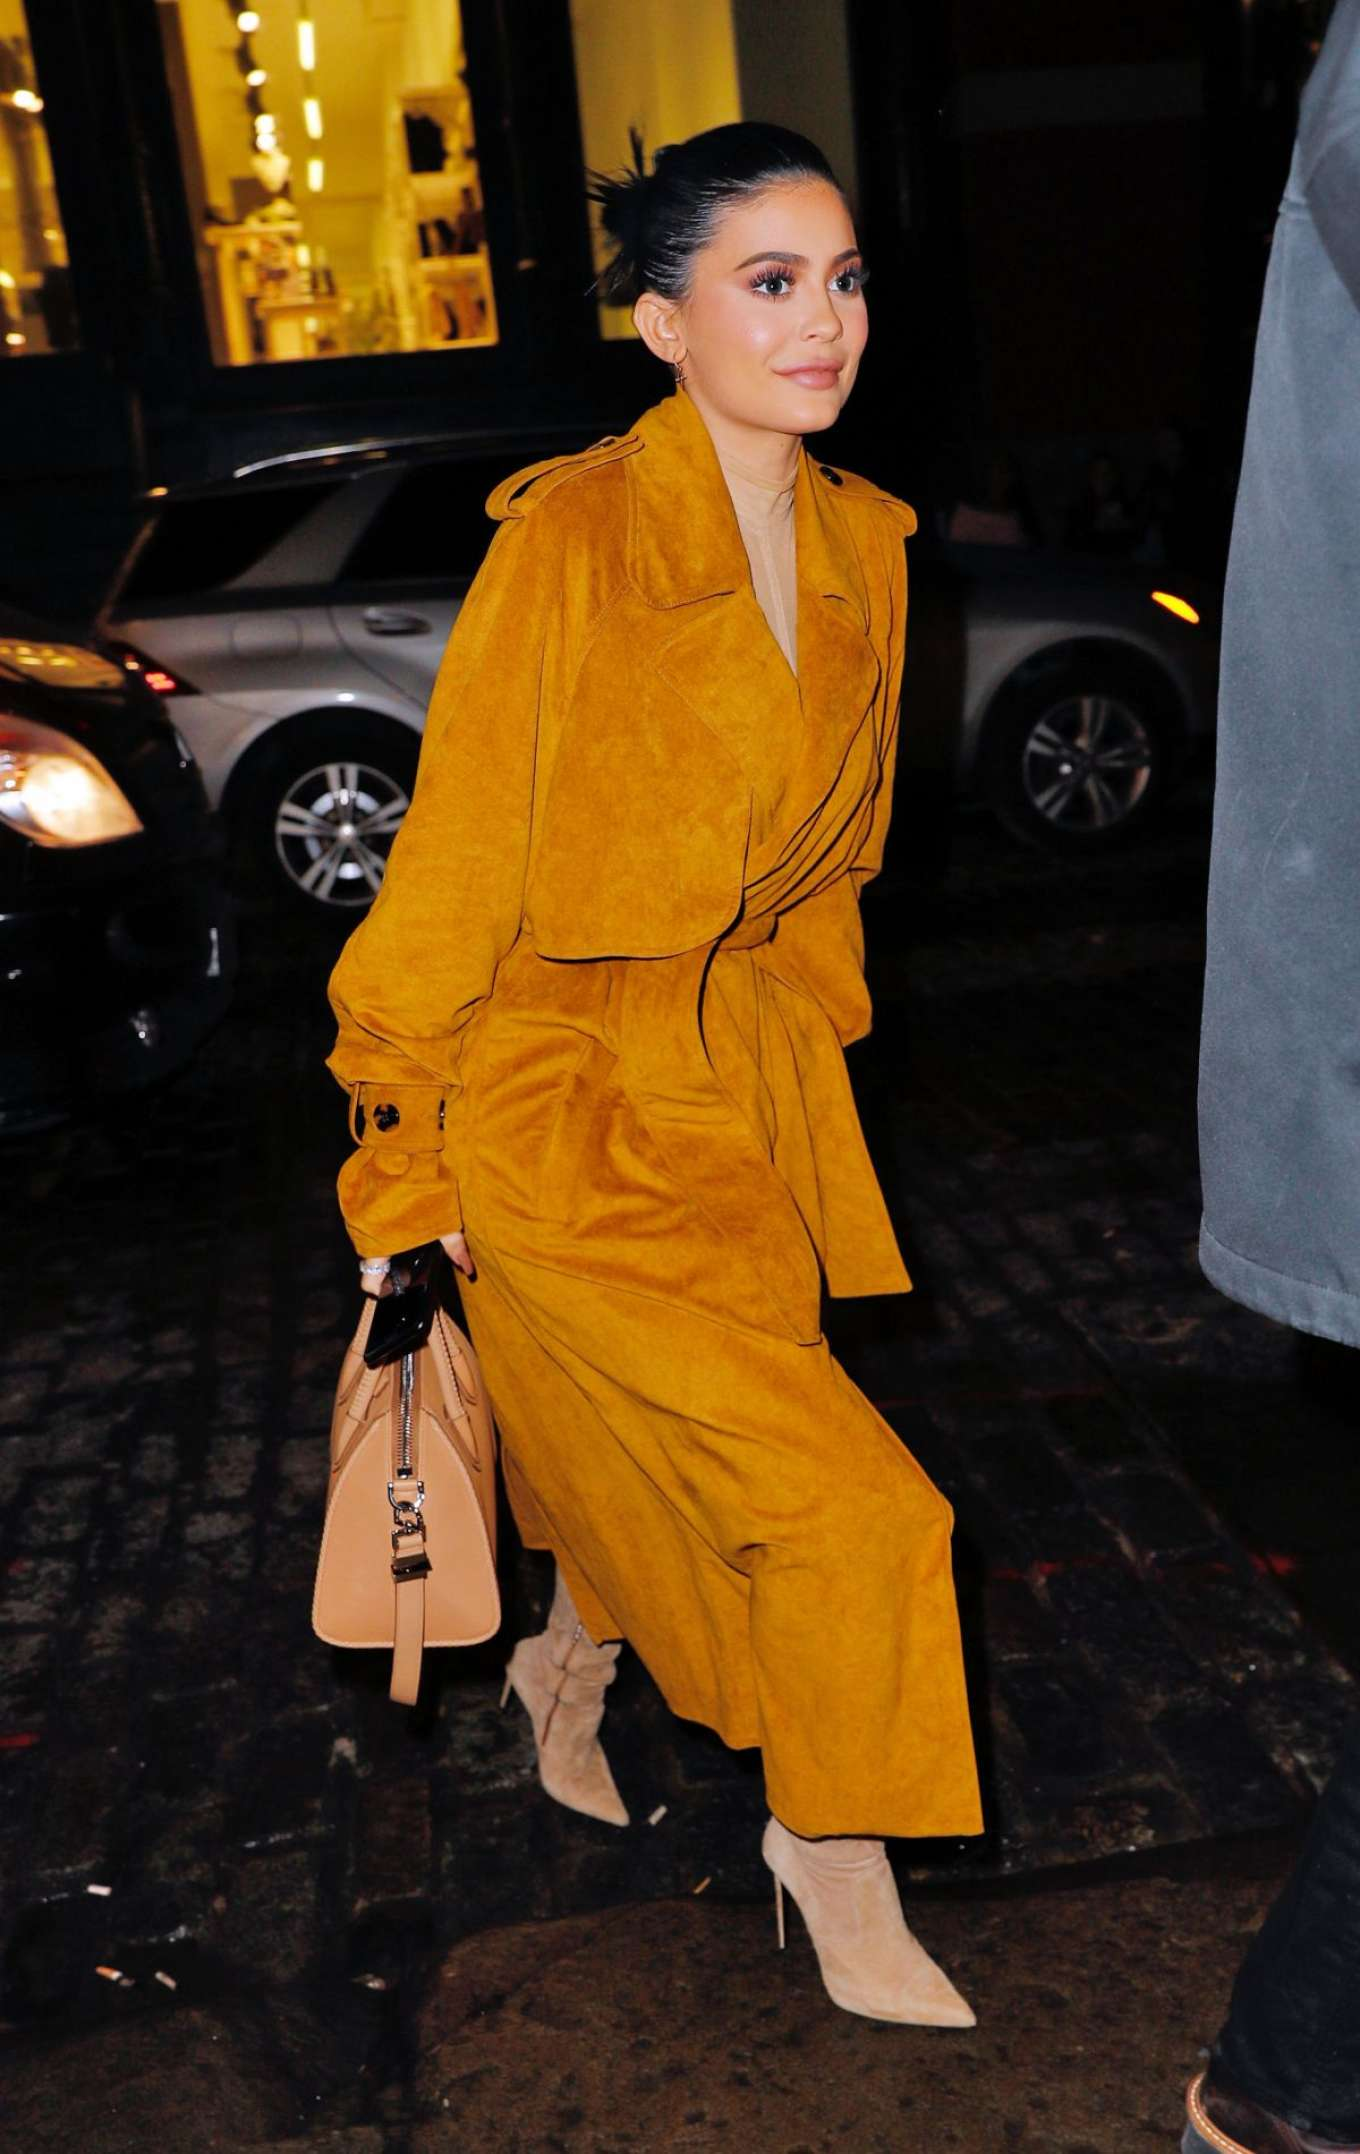 Kylie Jenner in Long Coat Out For Dinner in New York